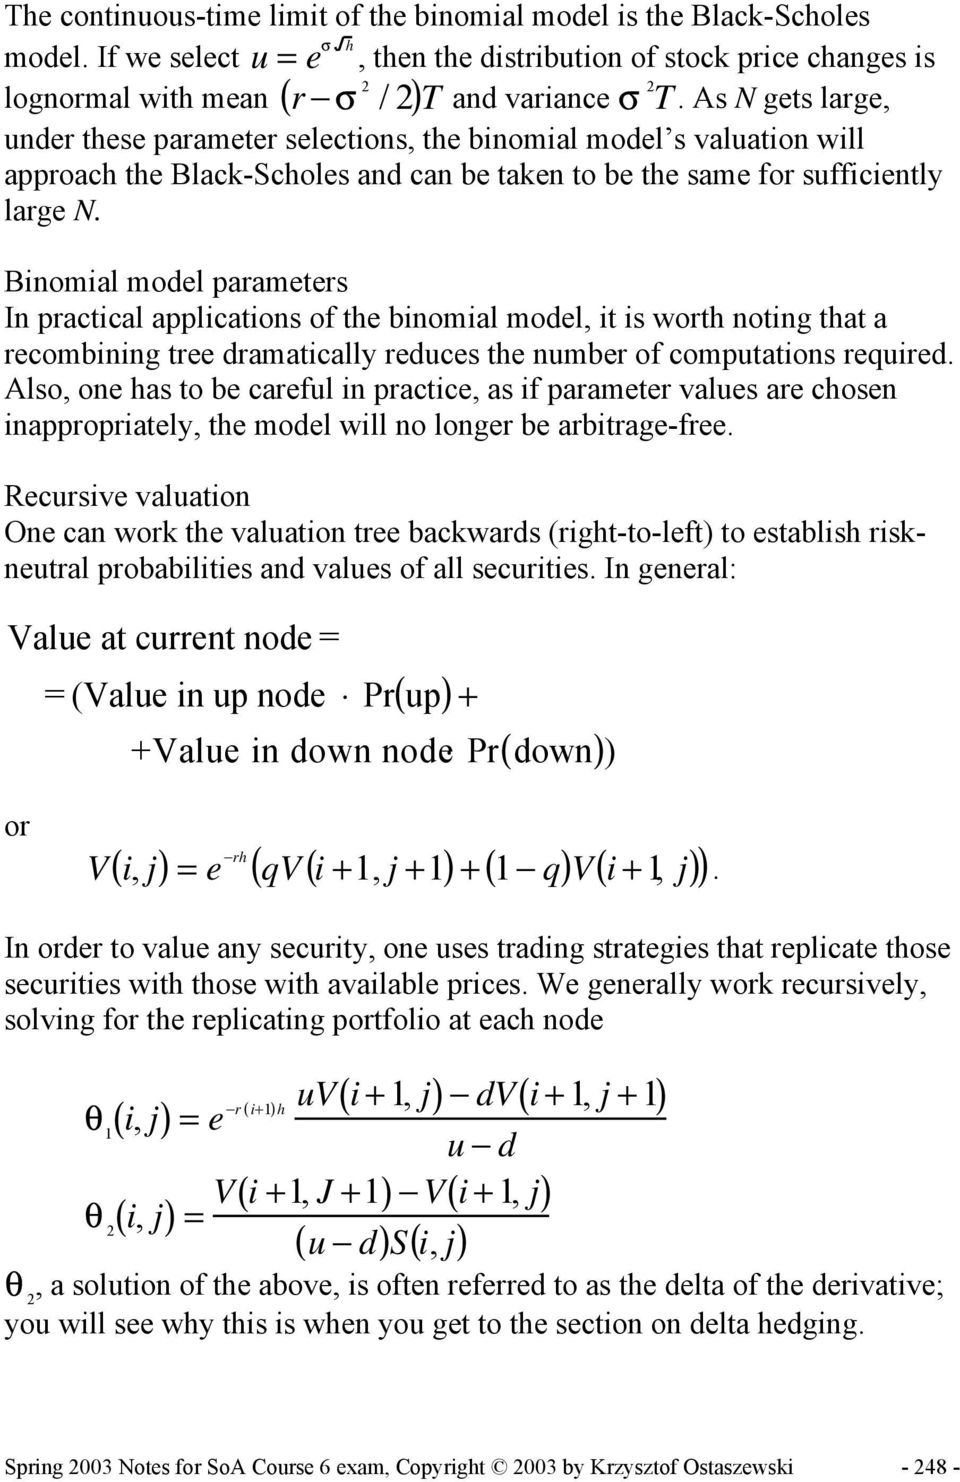 Binomial model parameters In practical applications of the binomial model, it is worth noting that a recombining tree dramatically reduces the number of computations required.